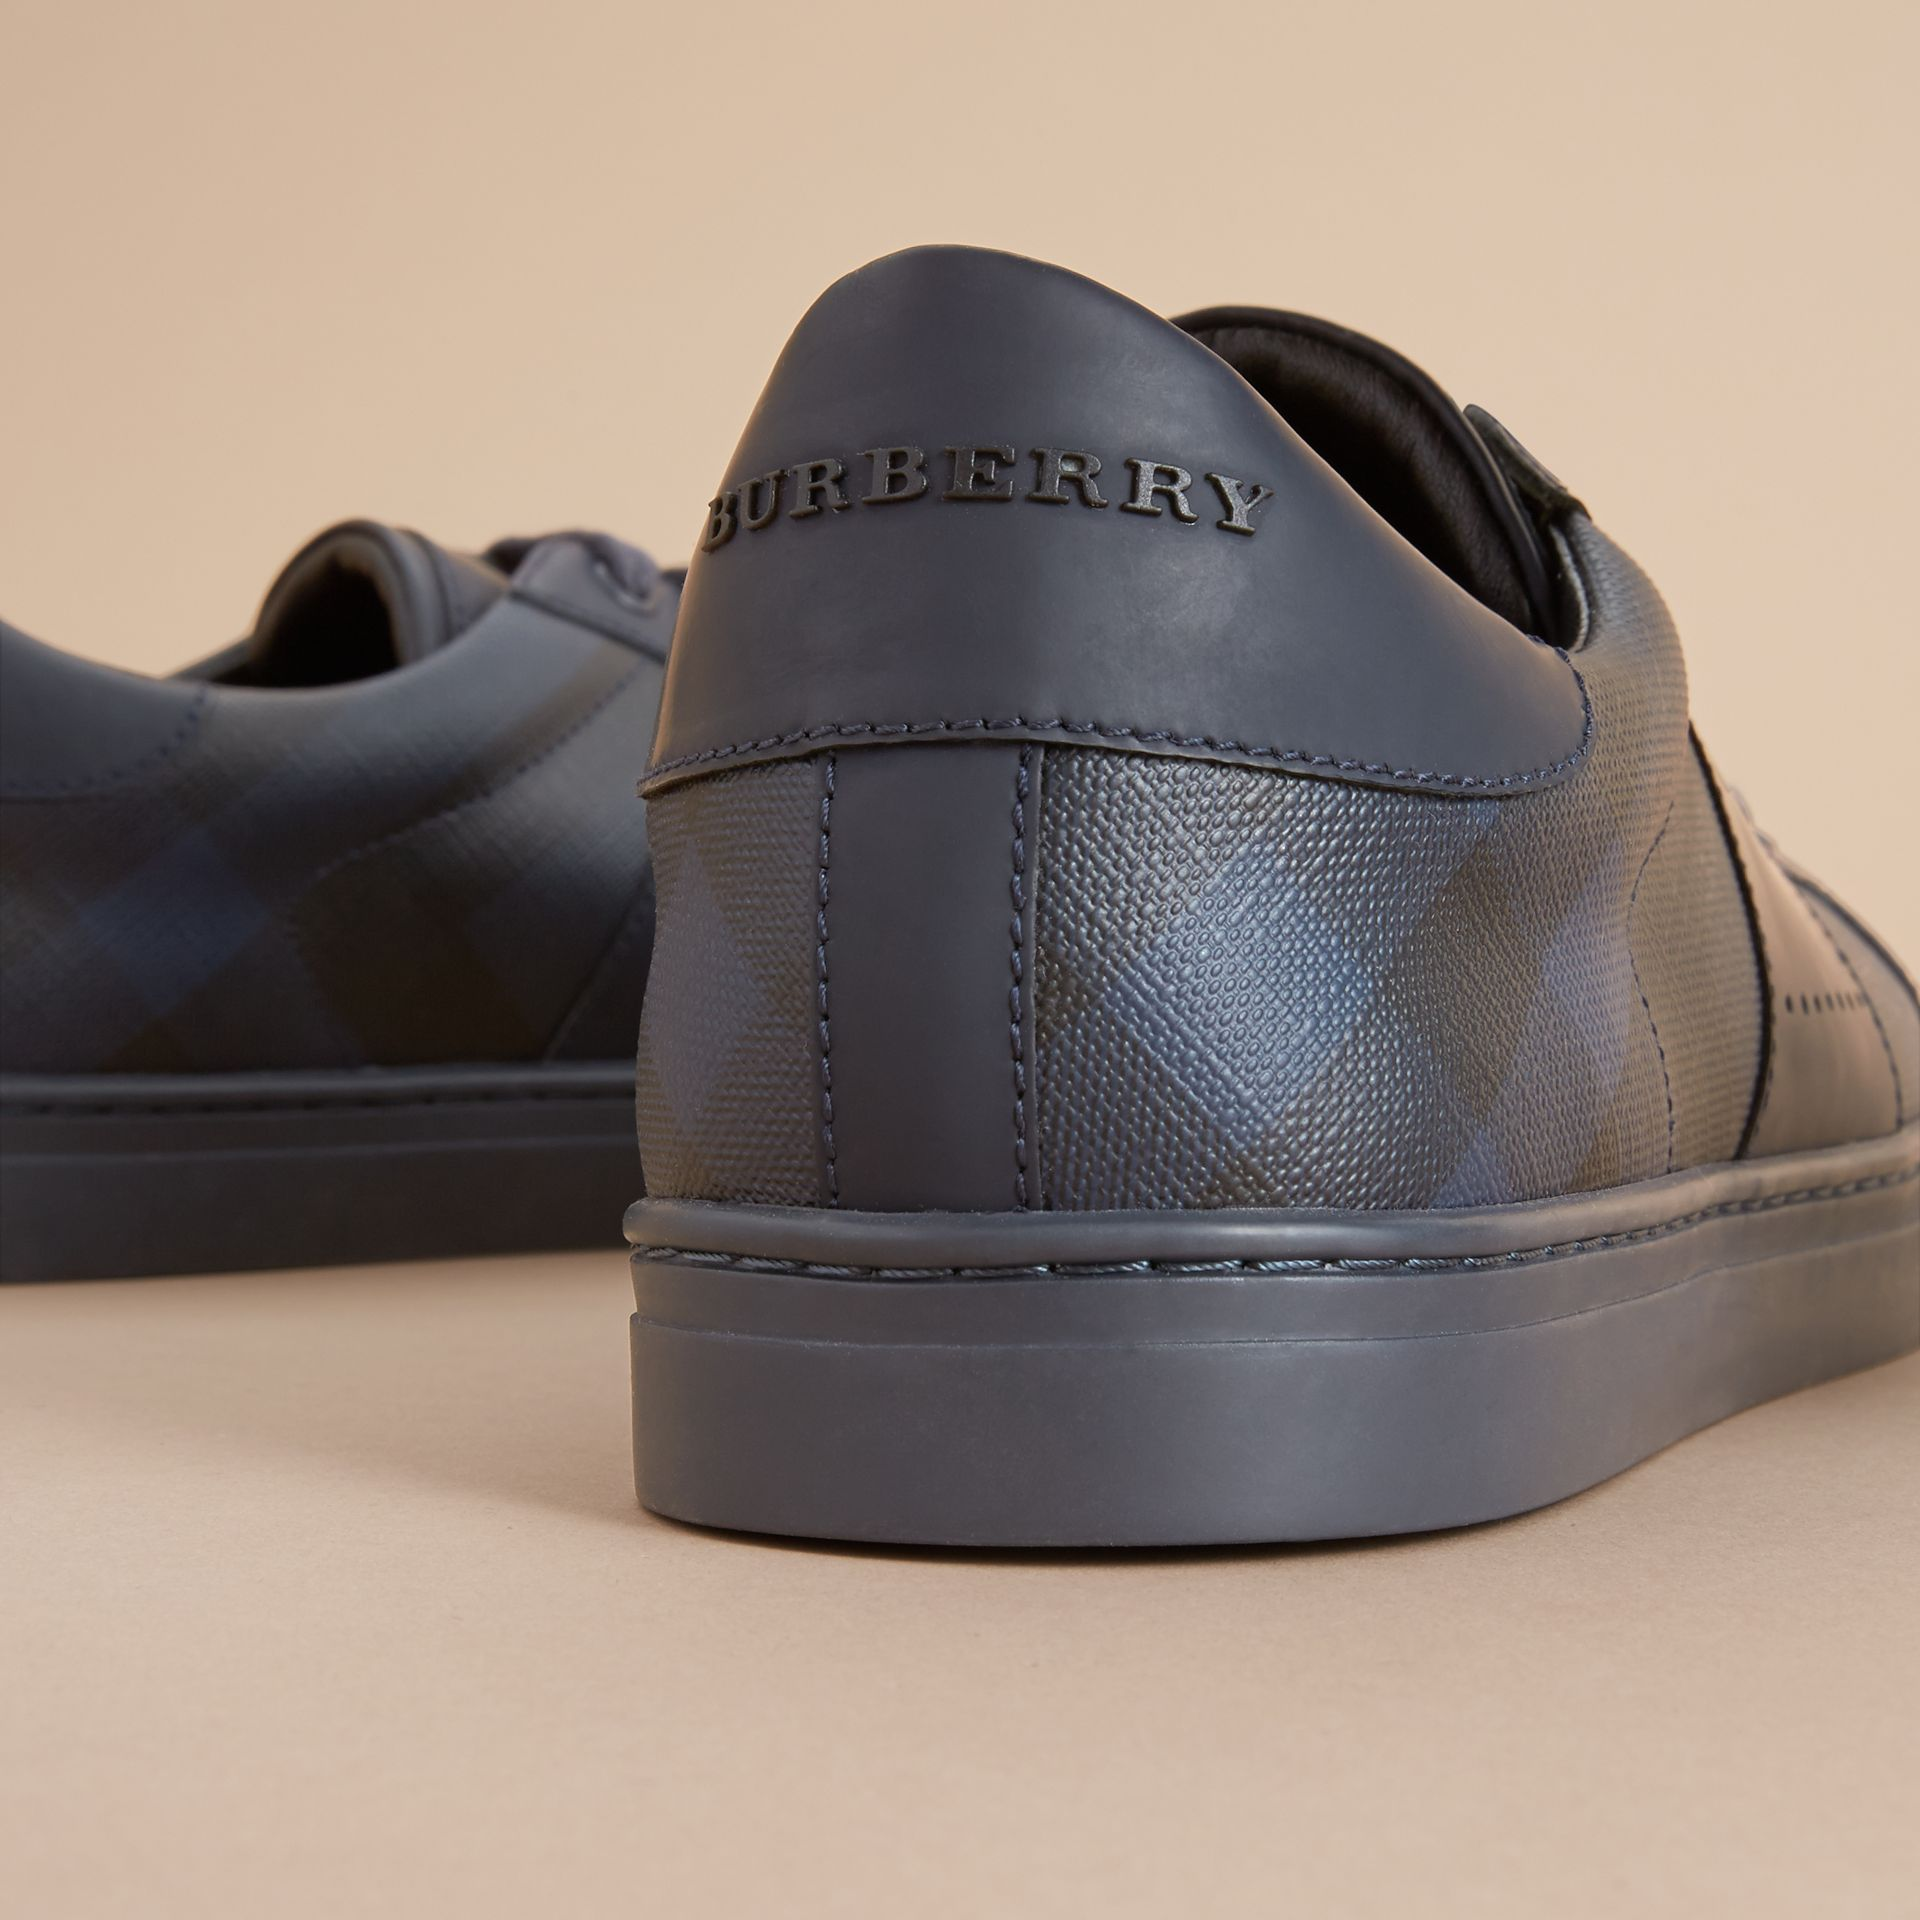 London Check and Leather Sneakers in Navy - Men | Burberry United Kingdom - gallery image 1